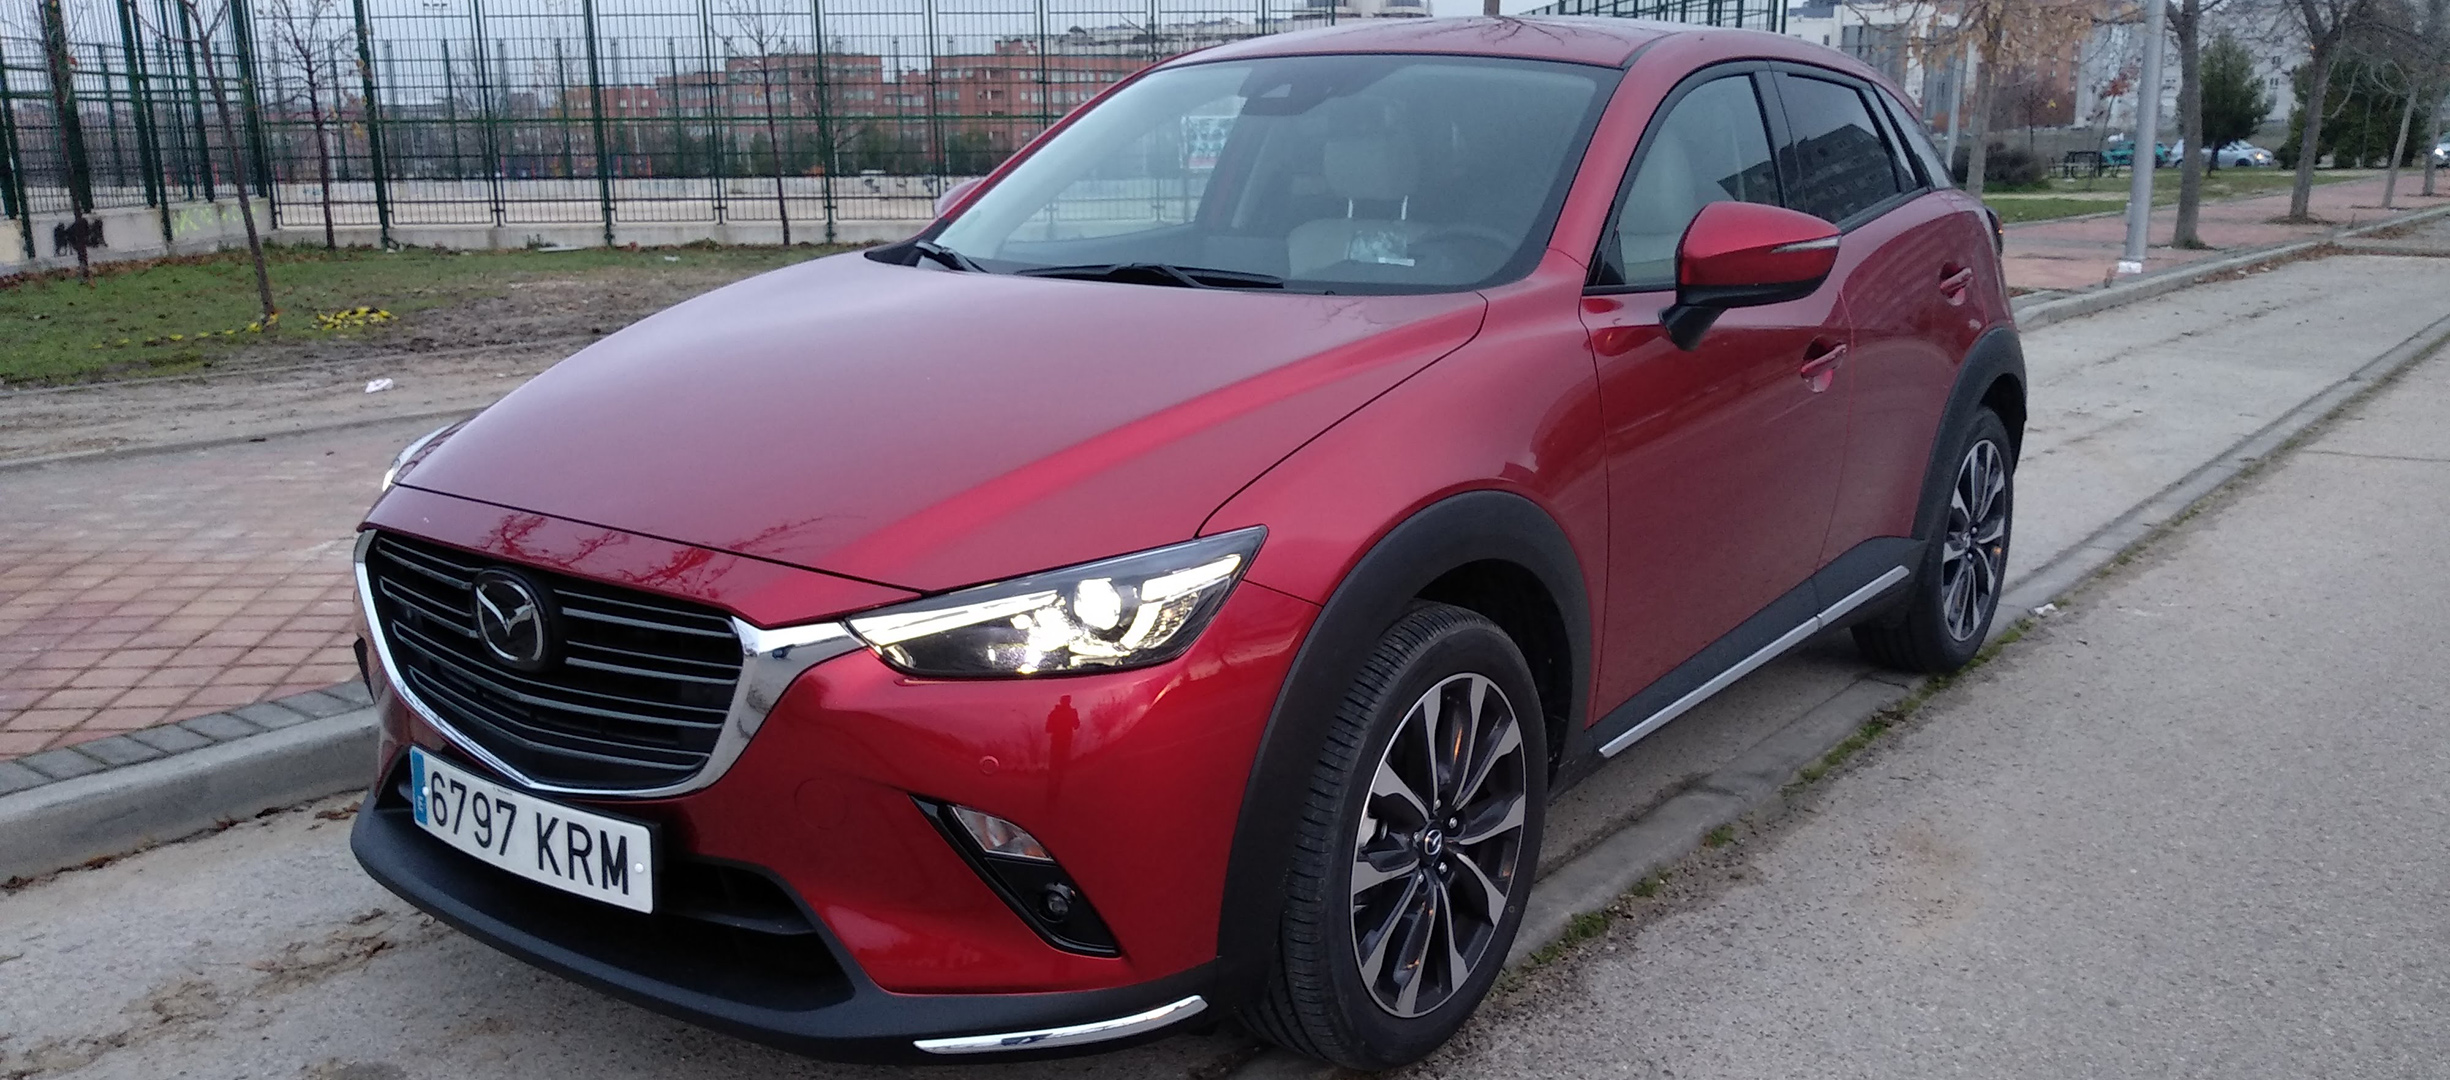 Mazda CX3, el SUV compacto Drive Together